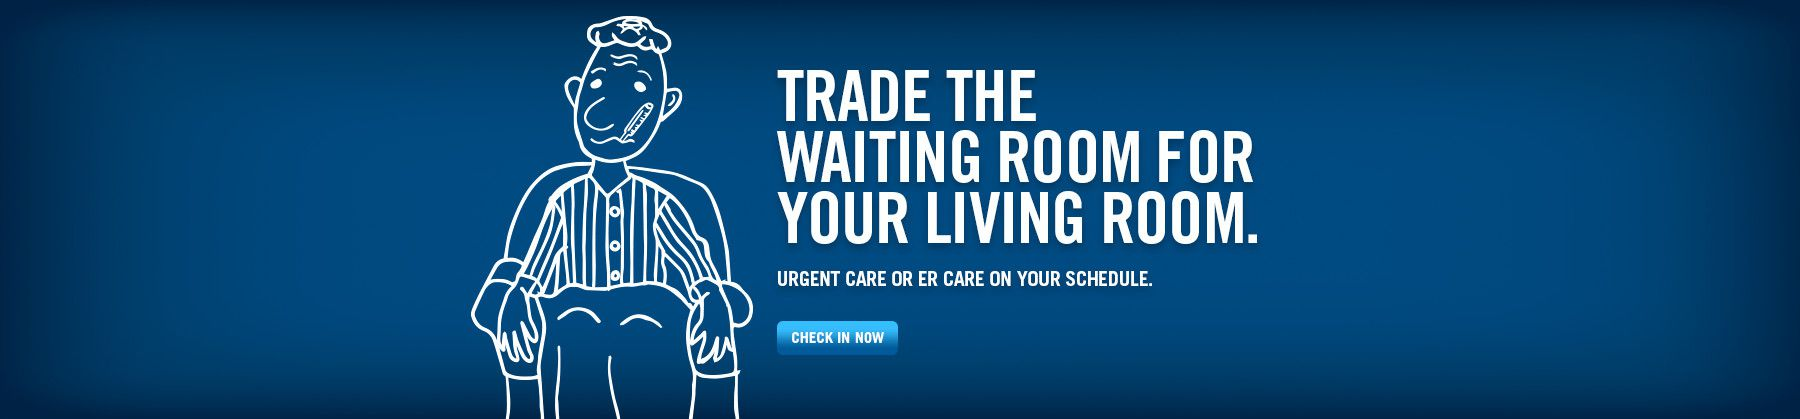 Trade The Waiting Room For Your Living Room.